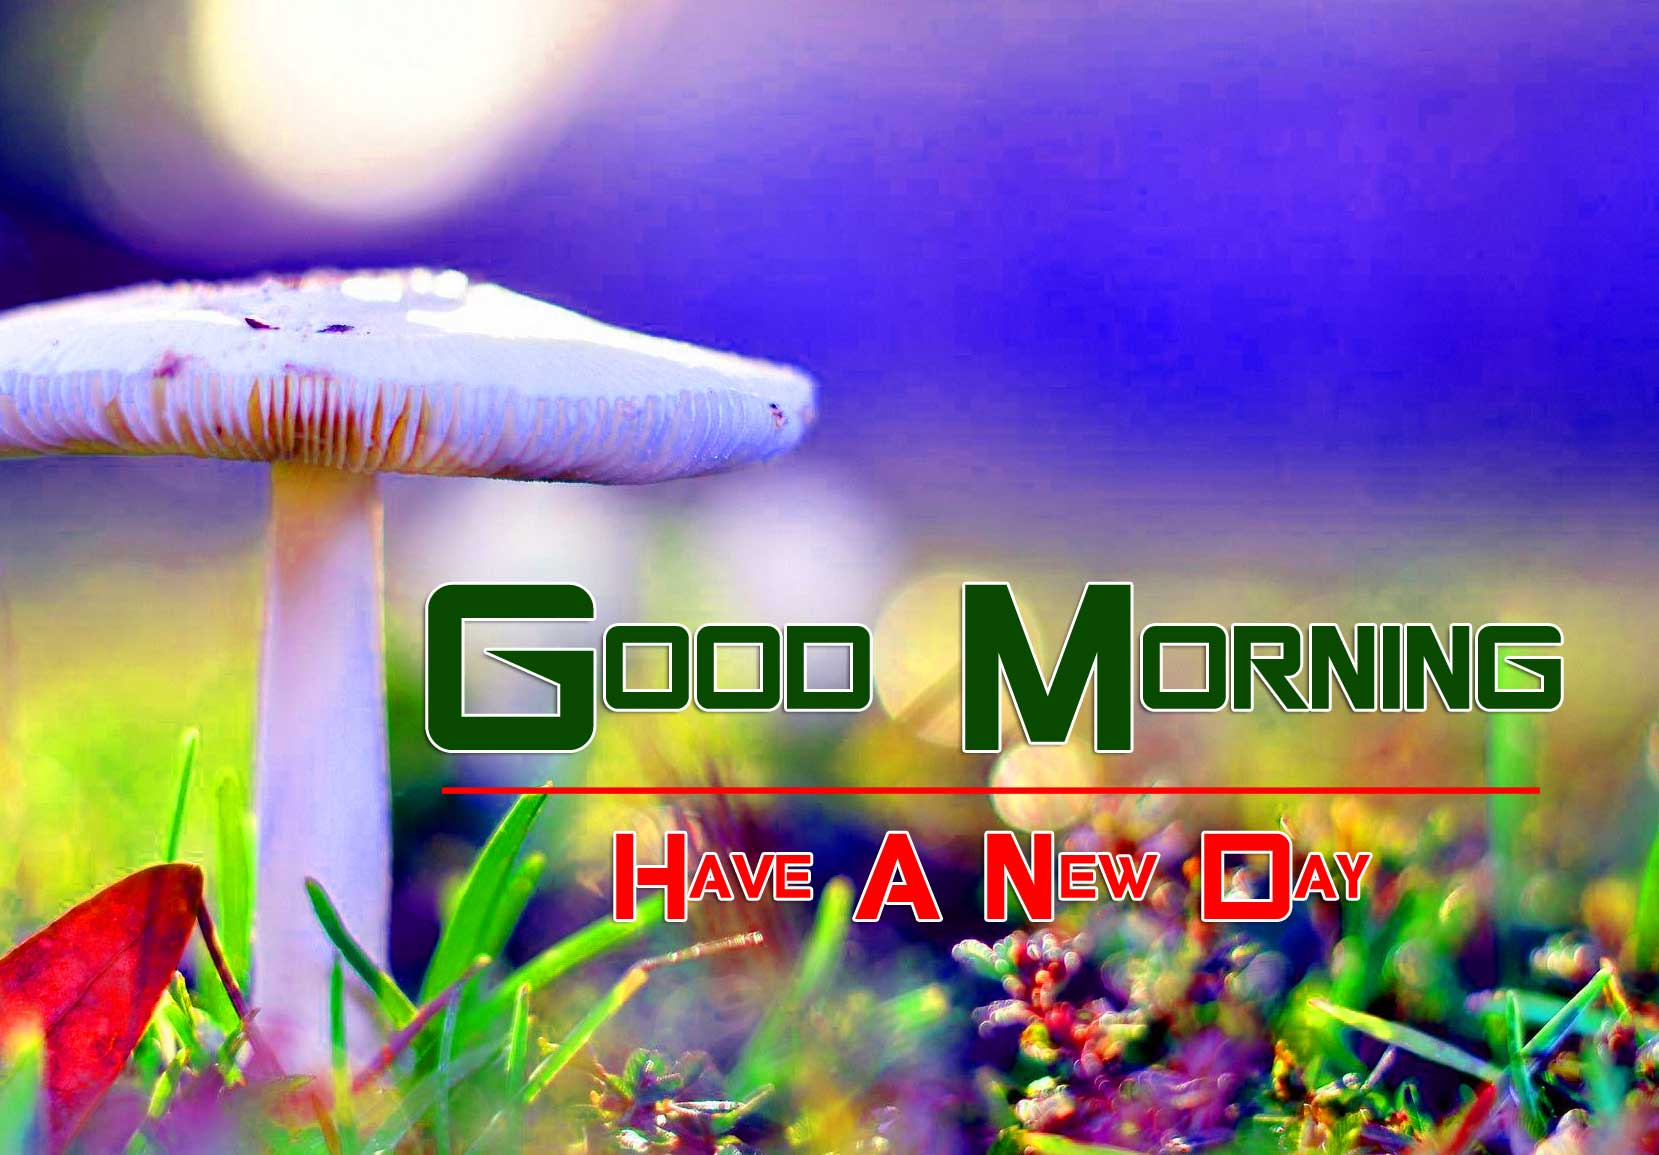 Free Top Quality Free Wonderful Good Morning 4k Pics images Download